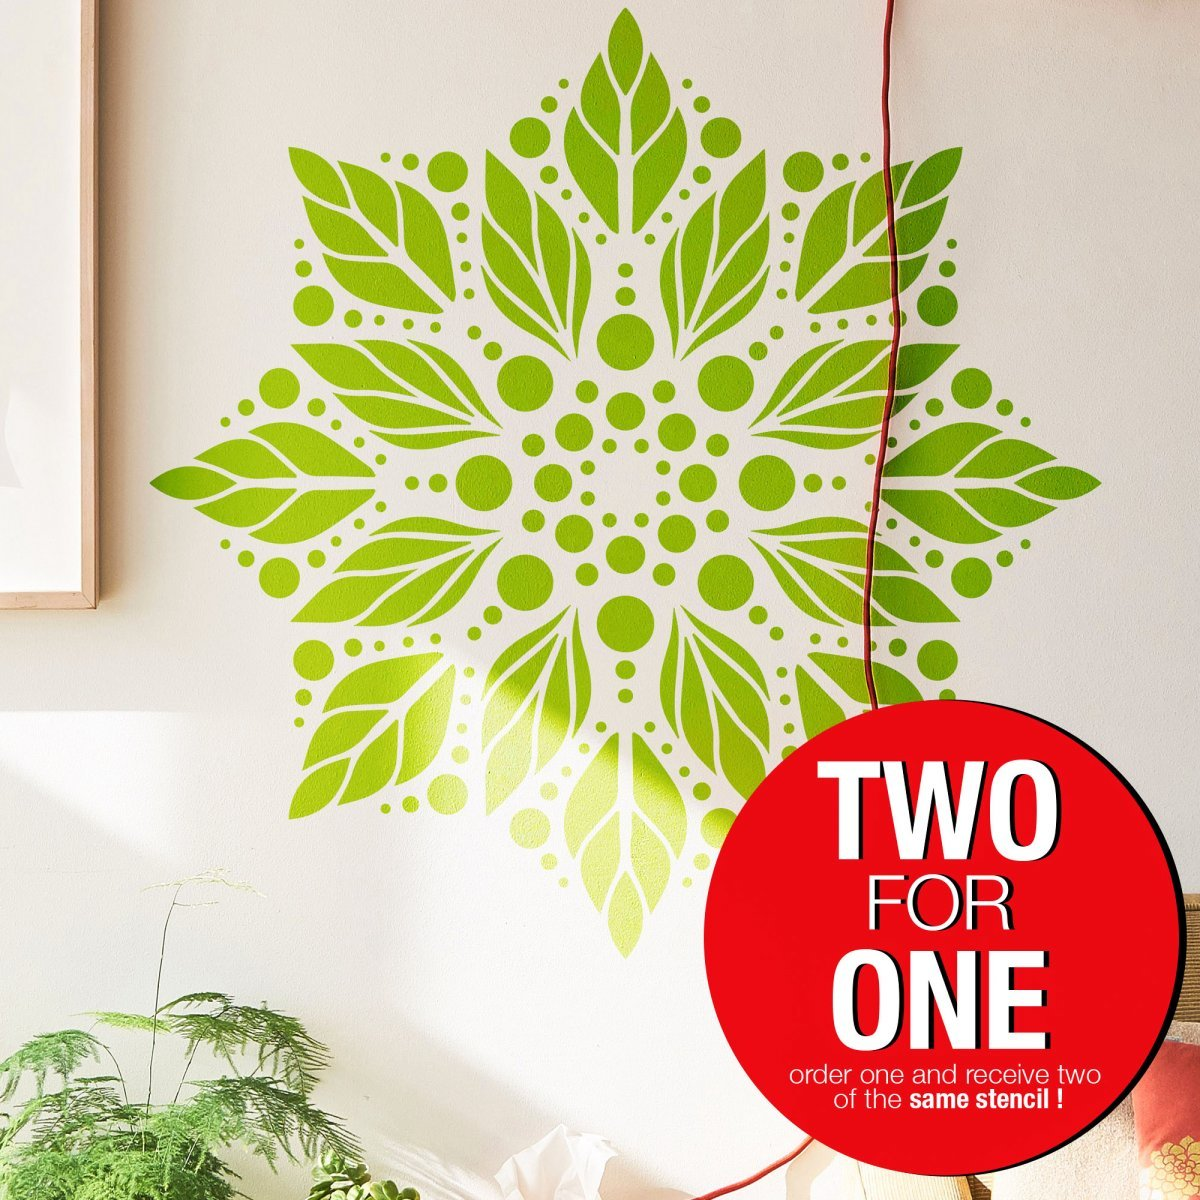 LEAF MANDALA / Reusable Allover Large Wall Stencils for Painting